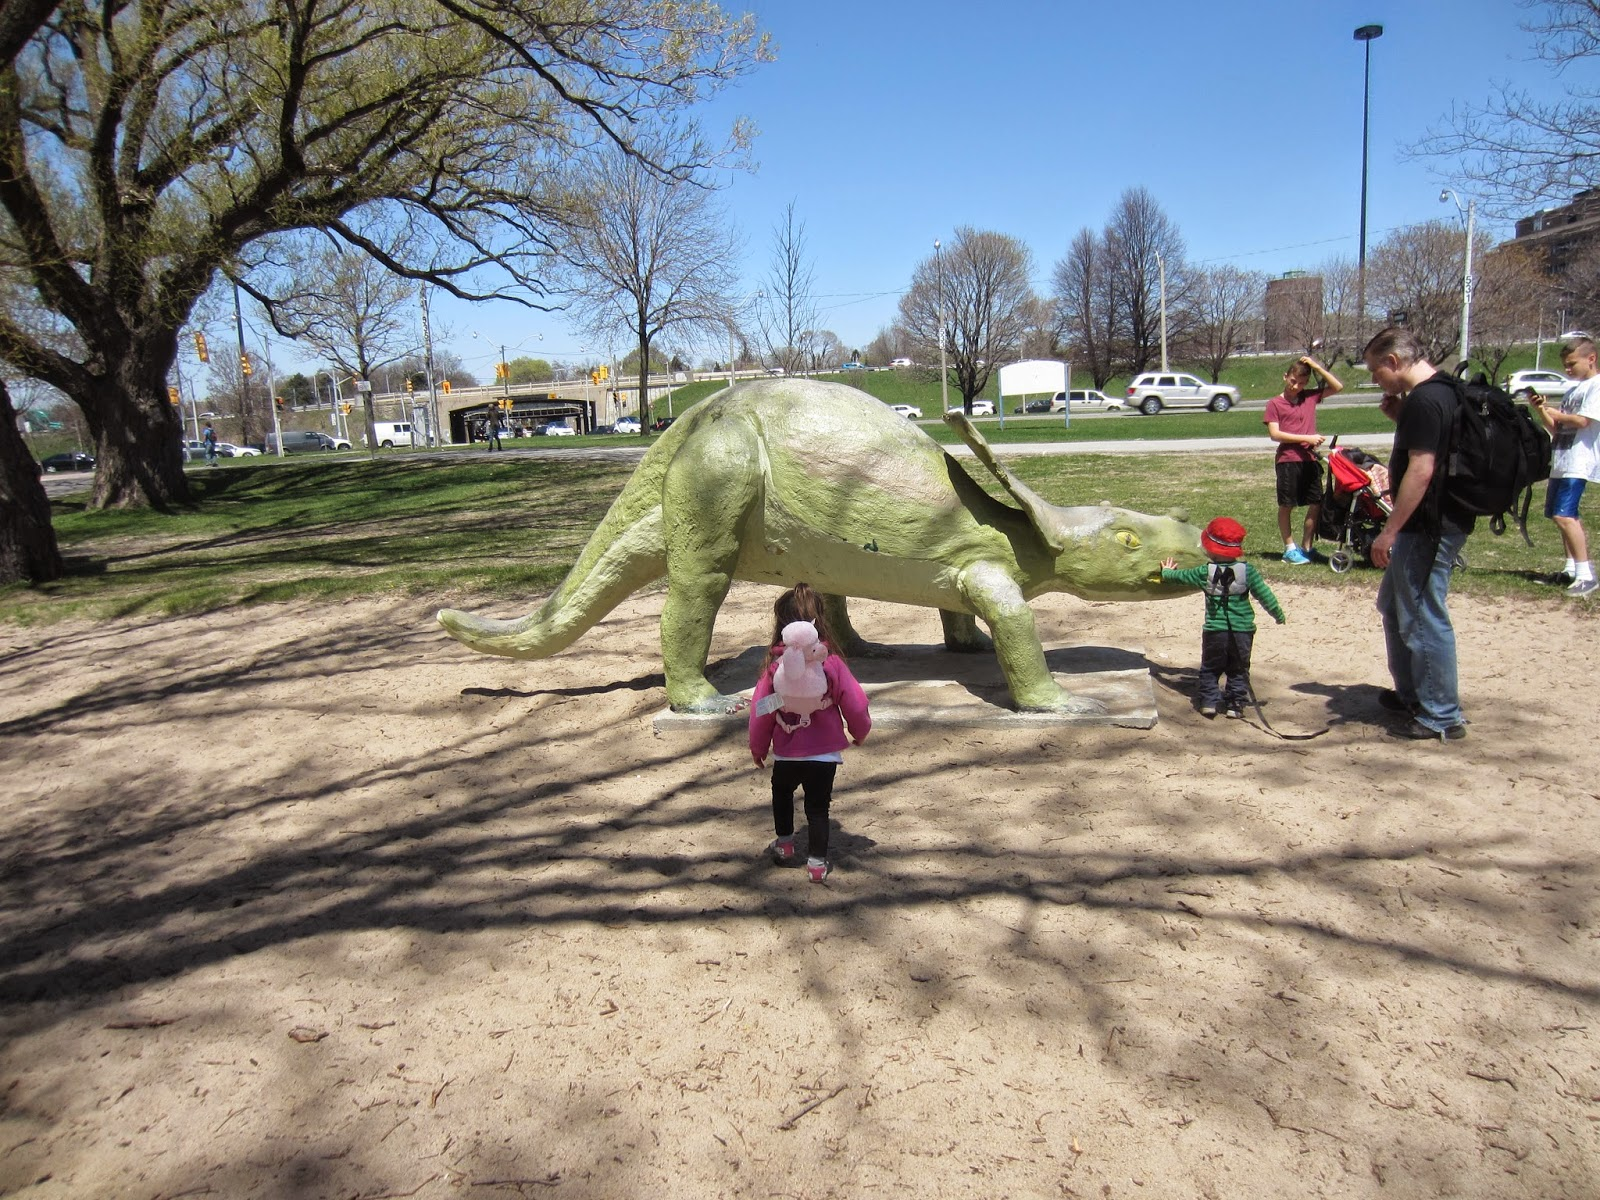 Marilyn Bell Park, Marilyn Bell Playground equipment, Marilyn Bell Dinosaur Playground Toronto